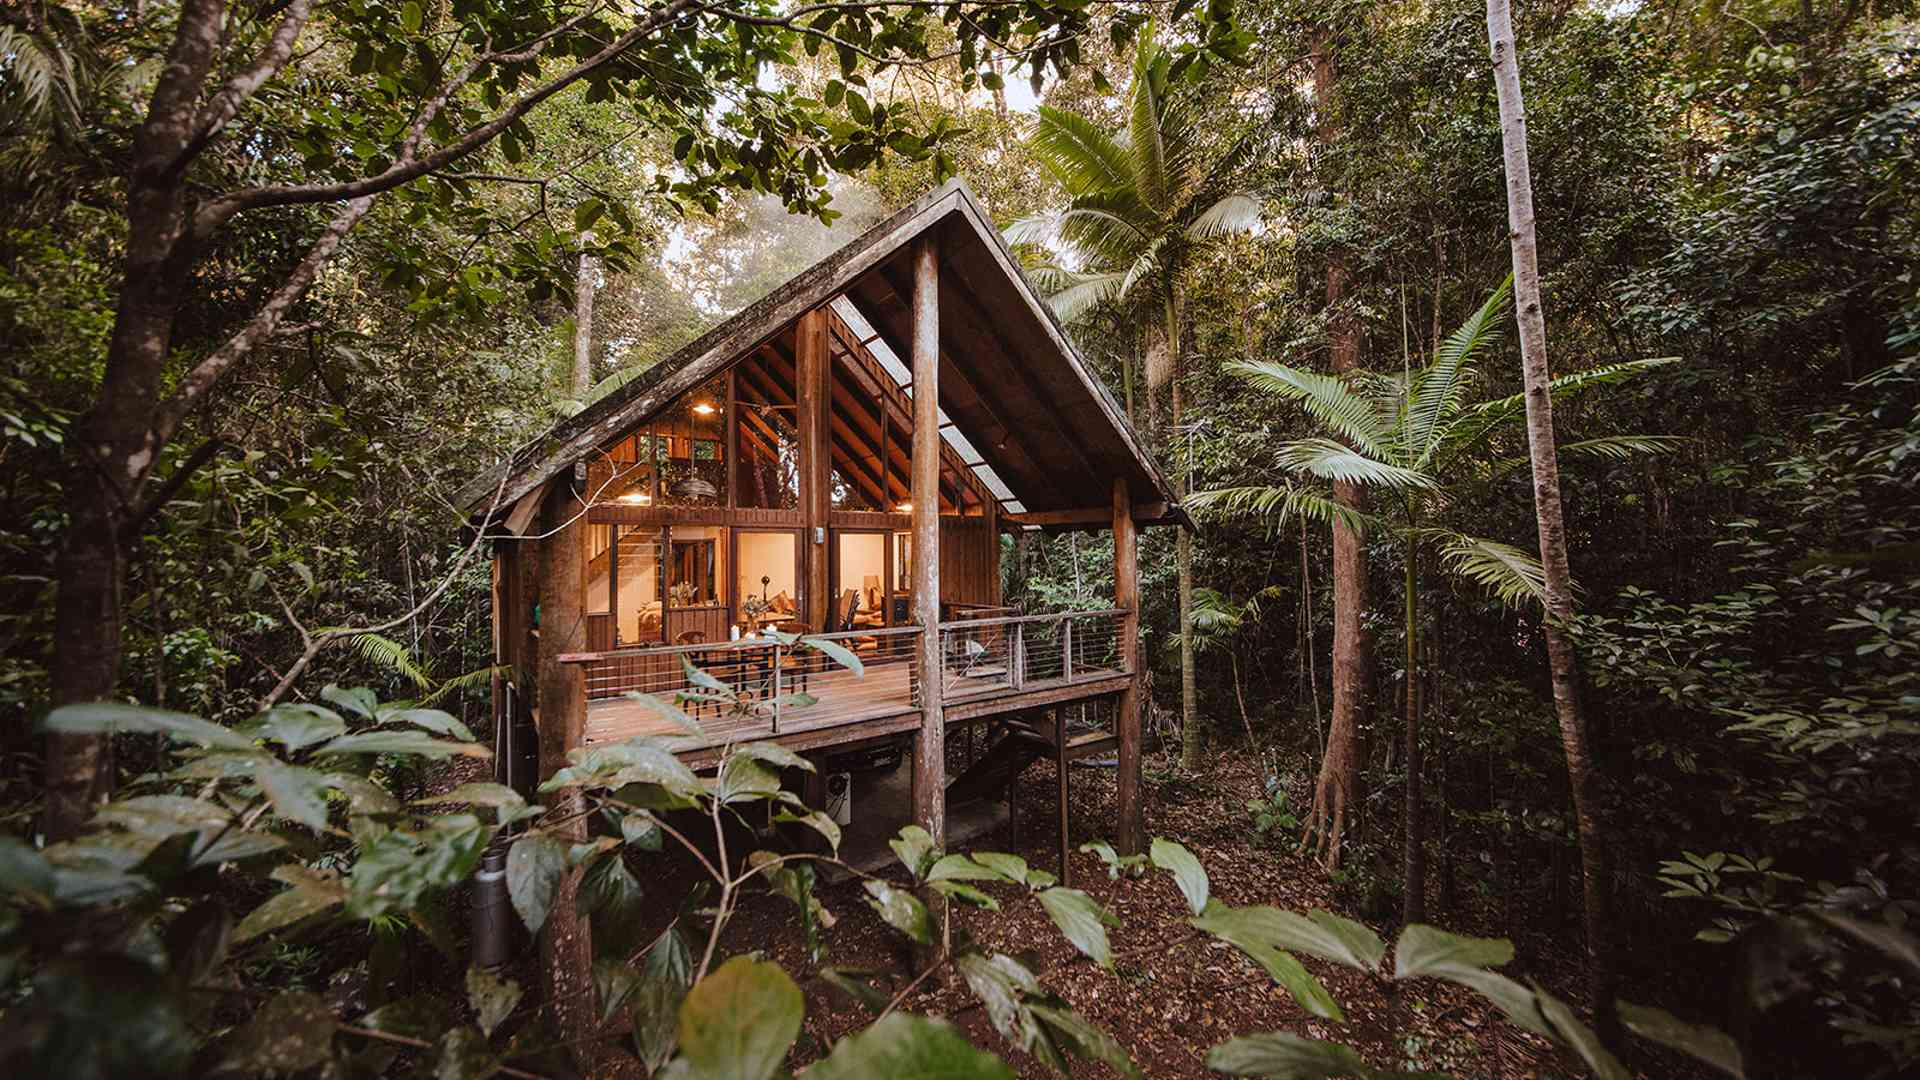 Seventeen Treehouses Around Australia You Can Book for an Immersive Nature Getaway